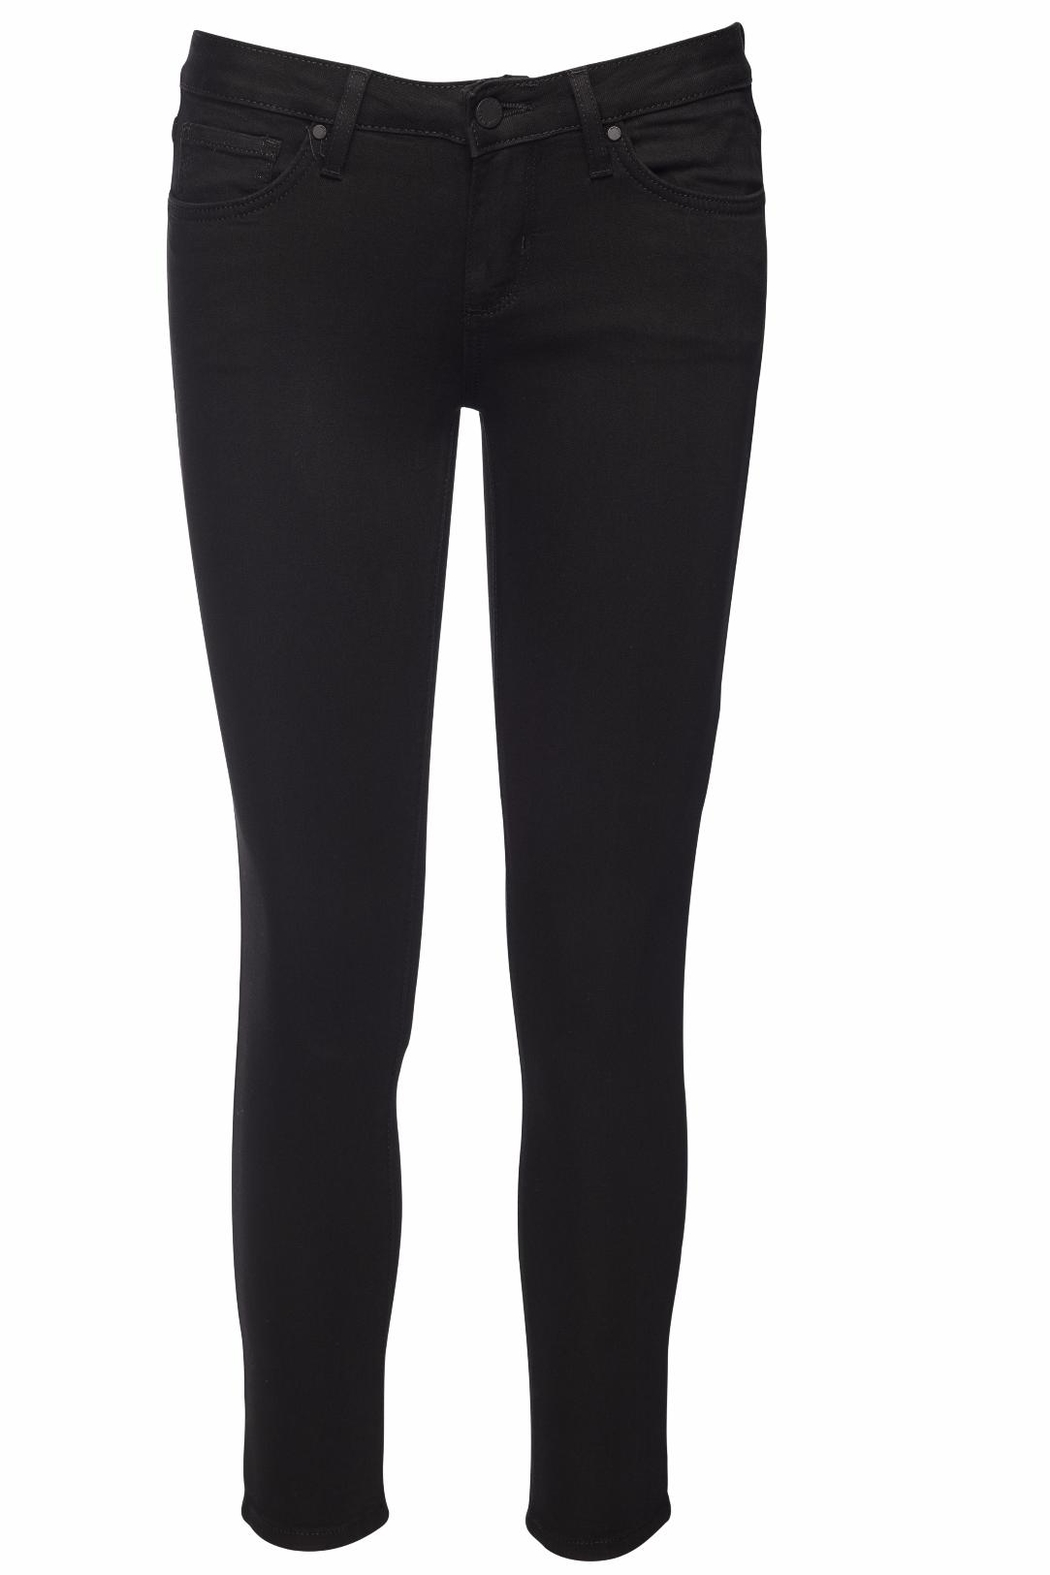 just black Cropped Super Skinny Jeans - Main Image